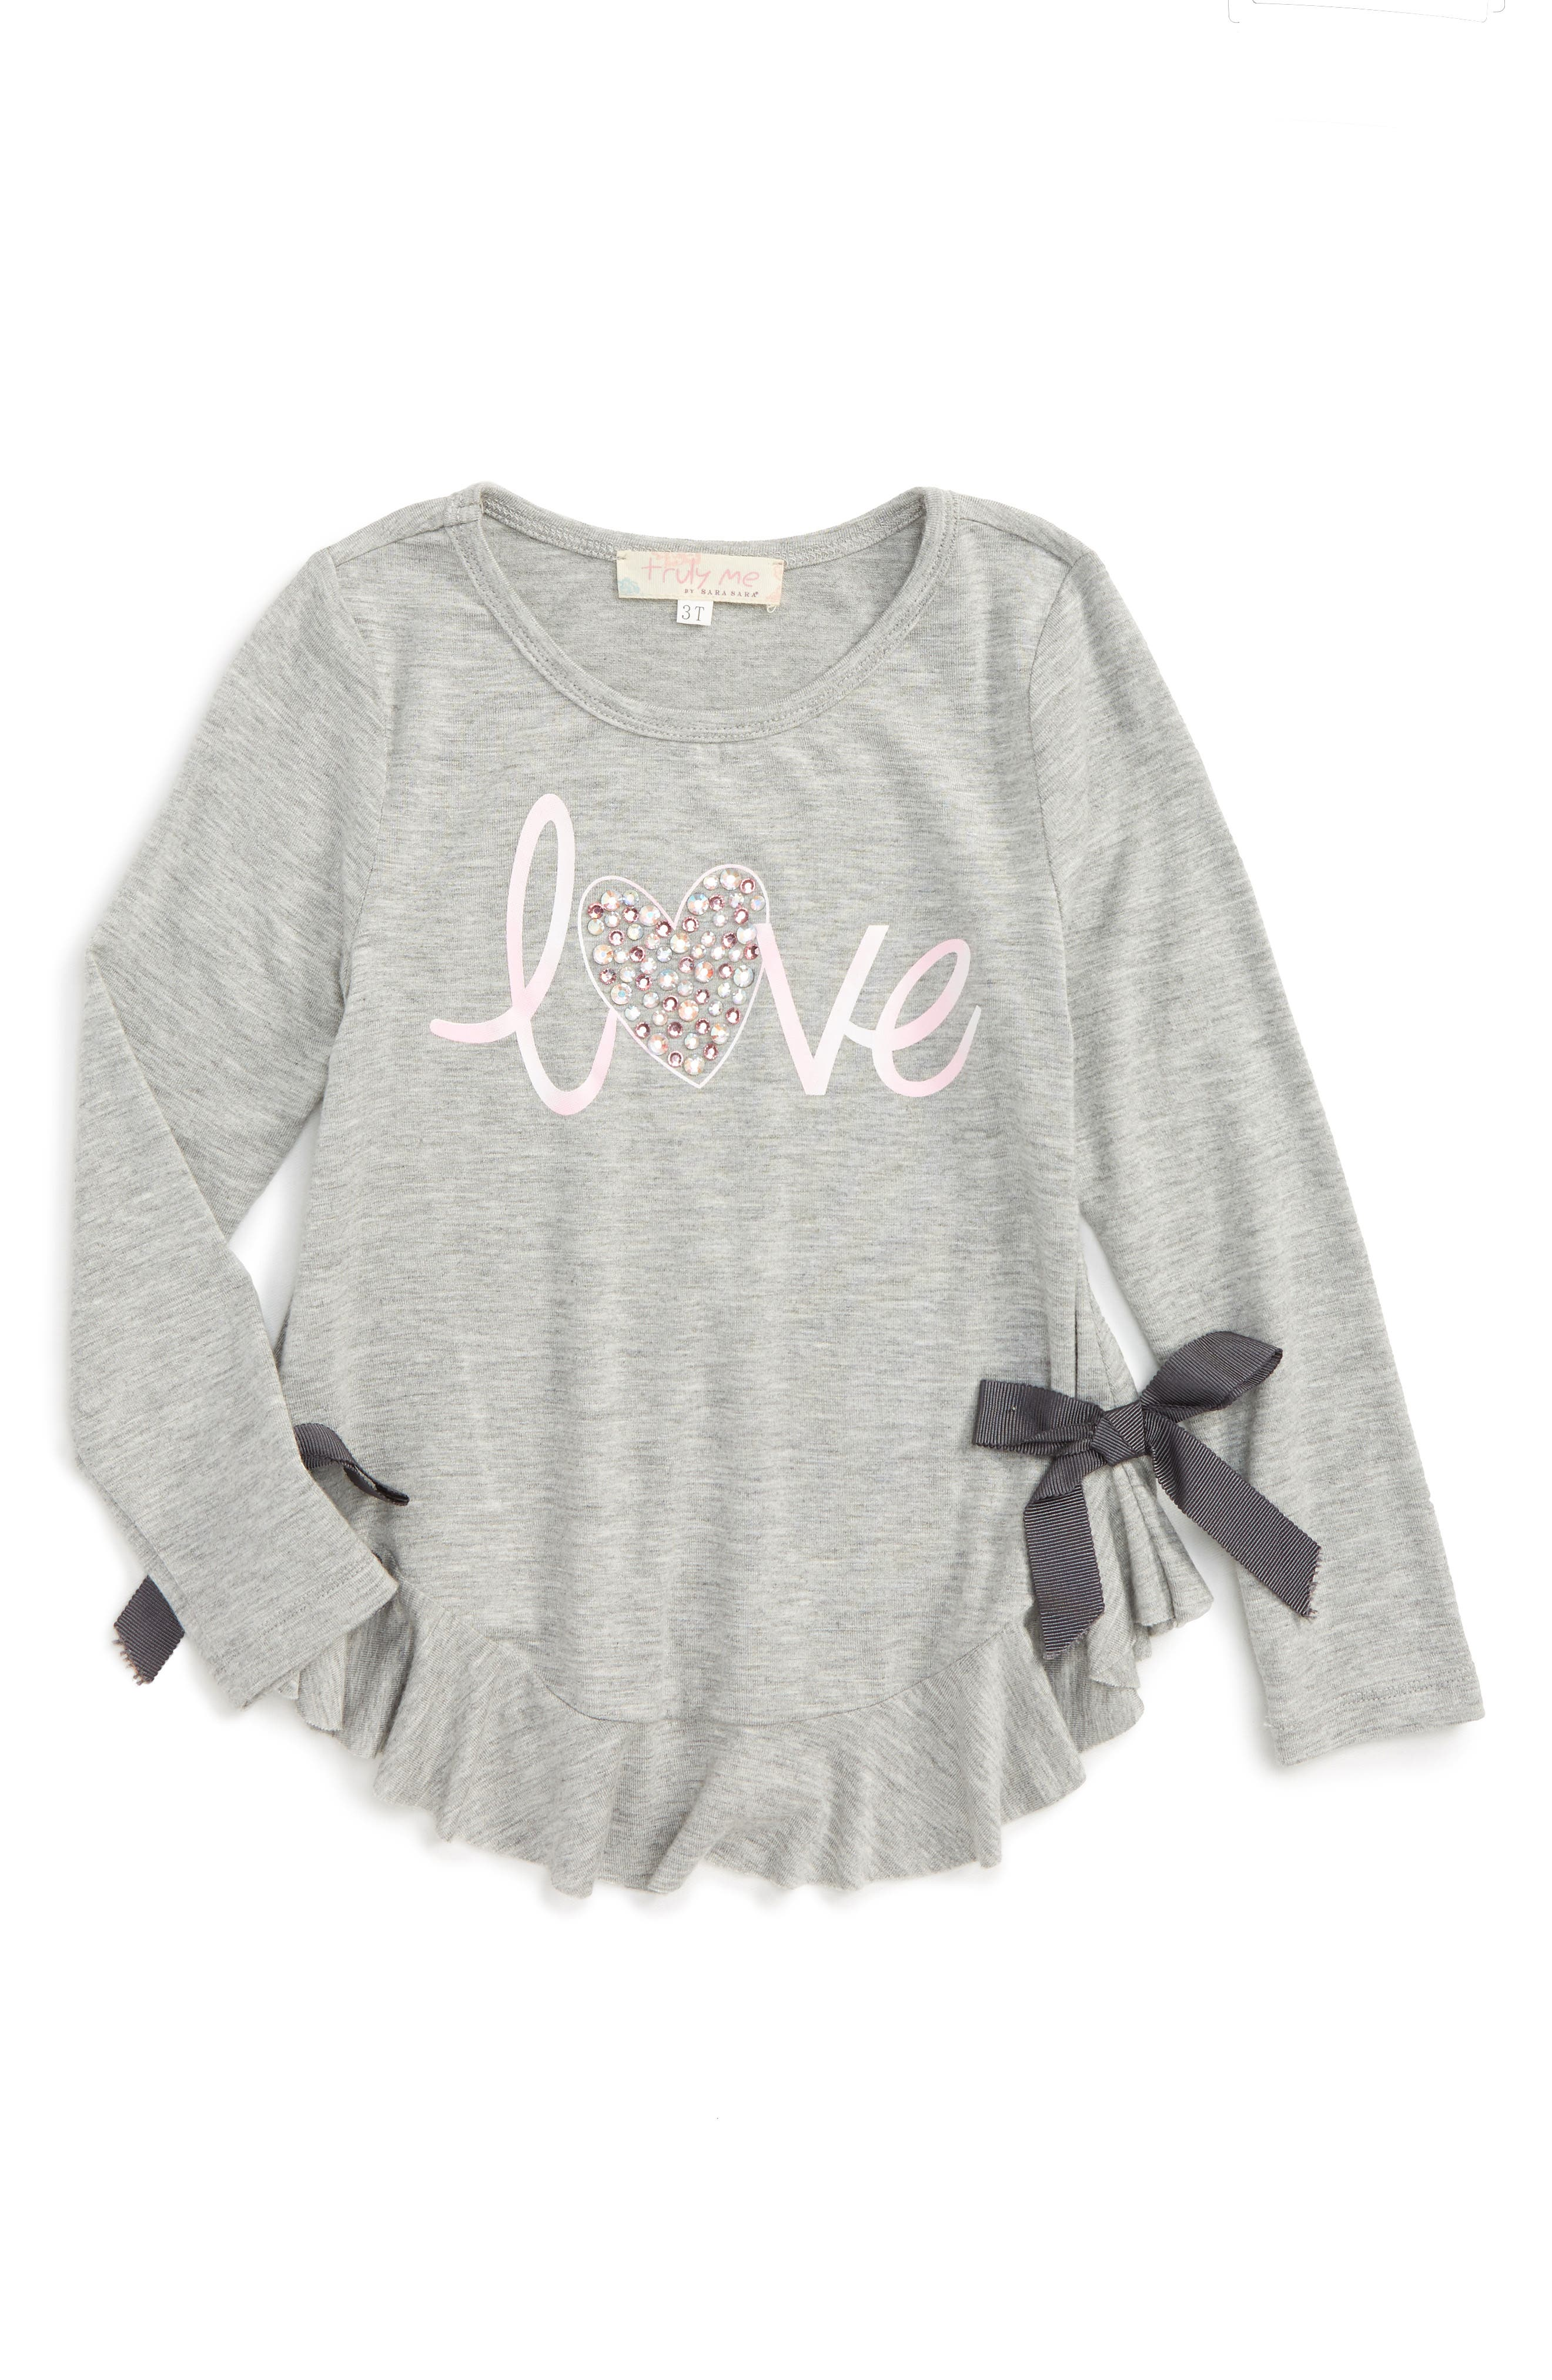 Love Embellished Graphic Tee,                             Main thumbnail 1, color,                             020